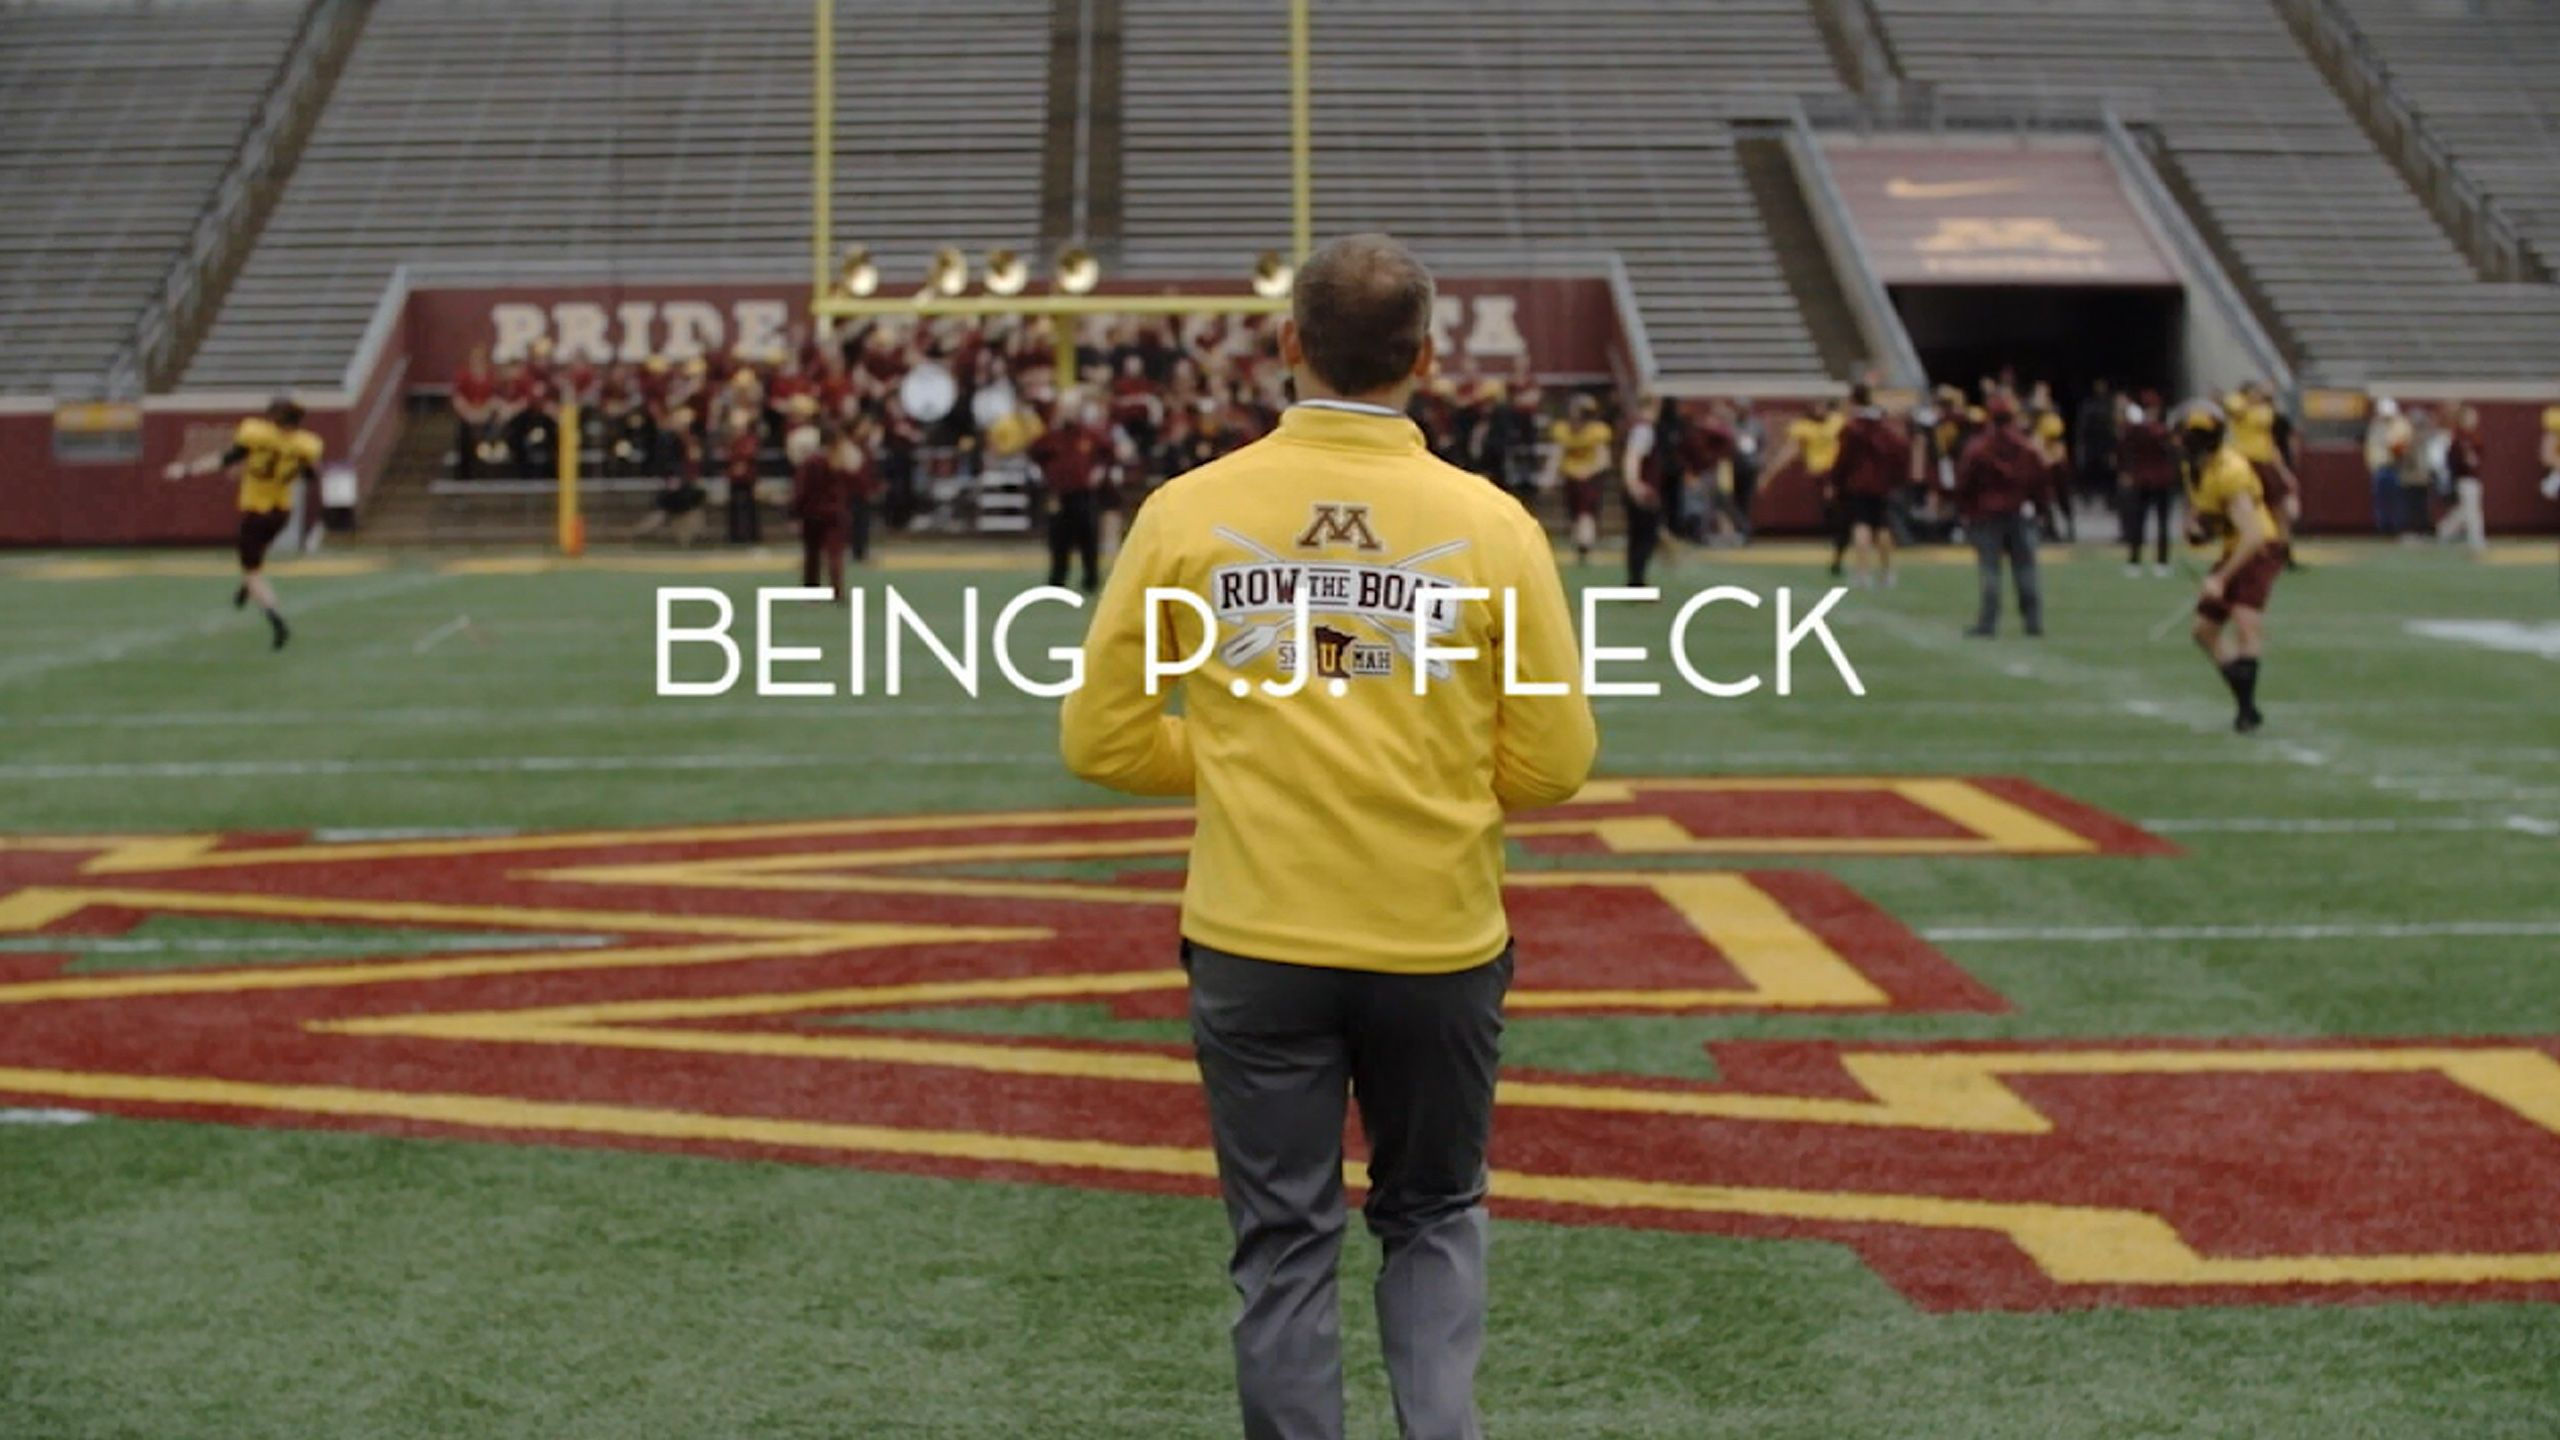 BEING P.J. Fleck: Compete-Compete-Compete